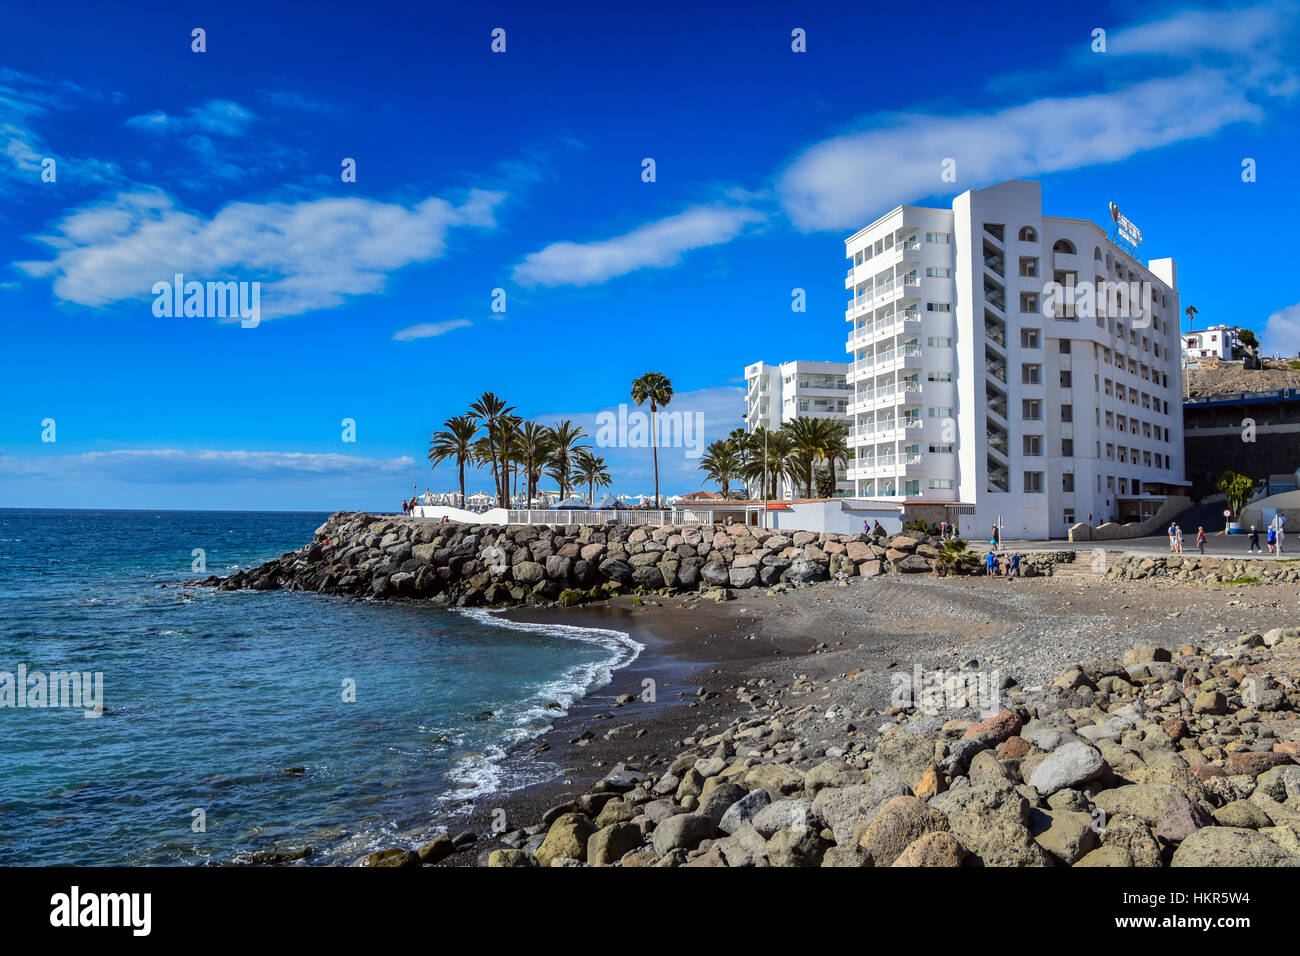 White sunwing family resort hotel on beach arguineguin gran canaria stock photo